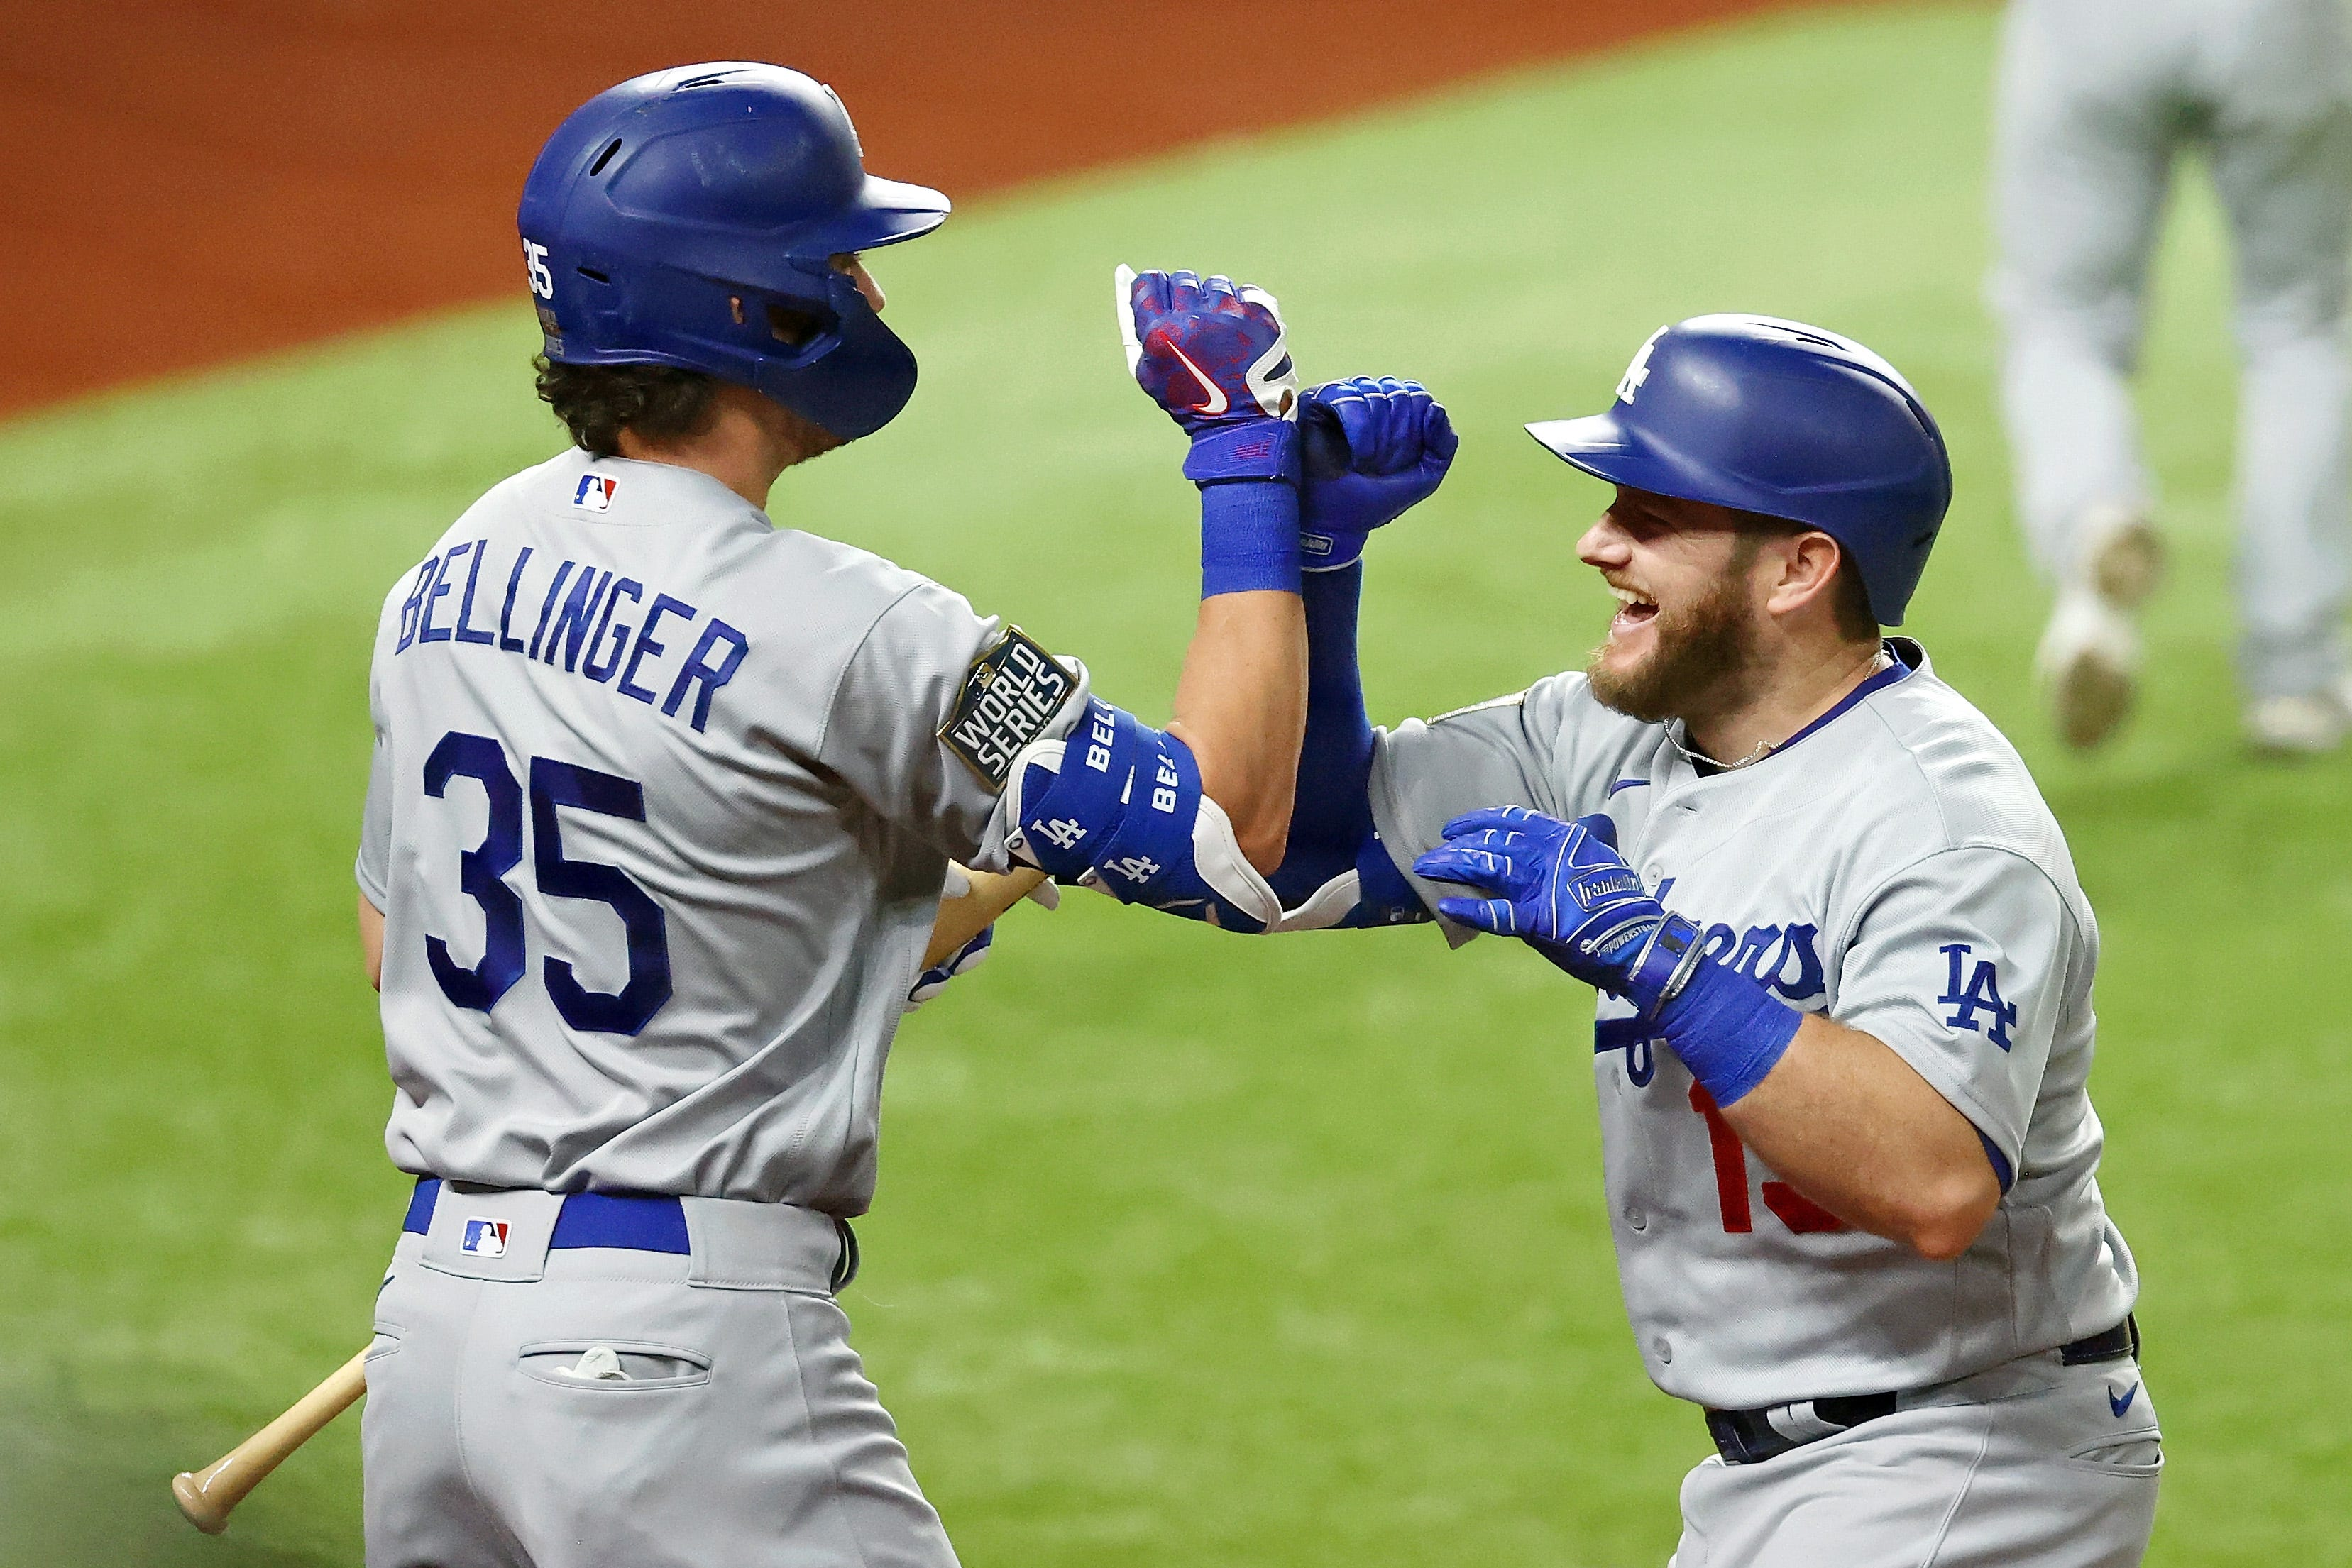 How to watch Dodgers vs. Rays: World Series Game 6 live stream, schedule, TV channel, start time